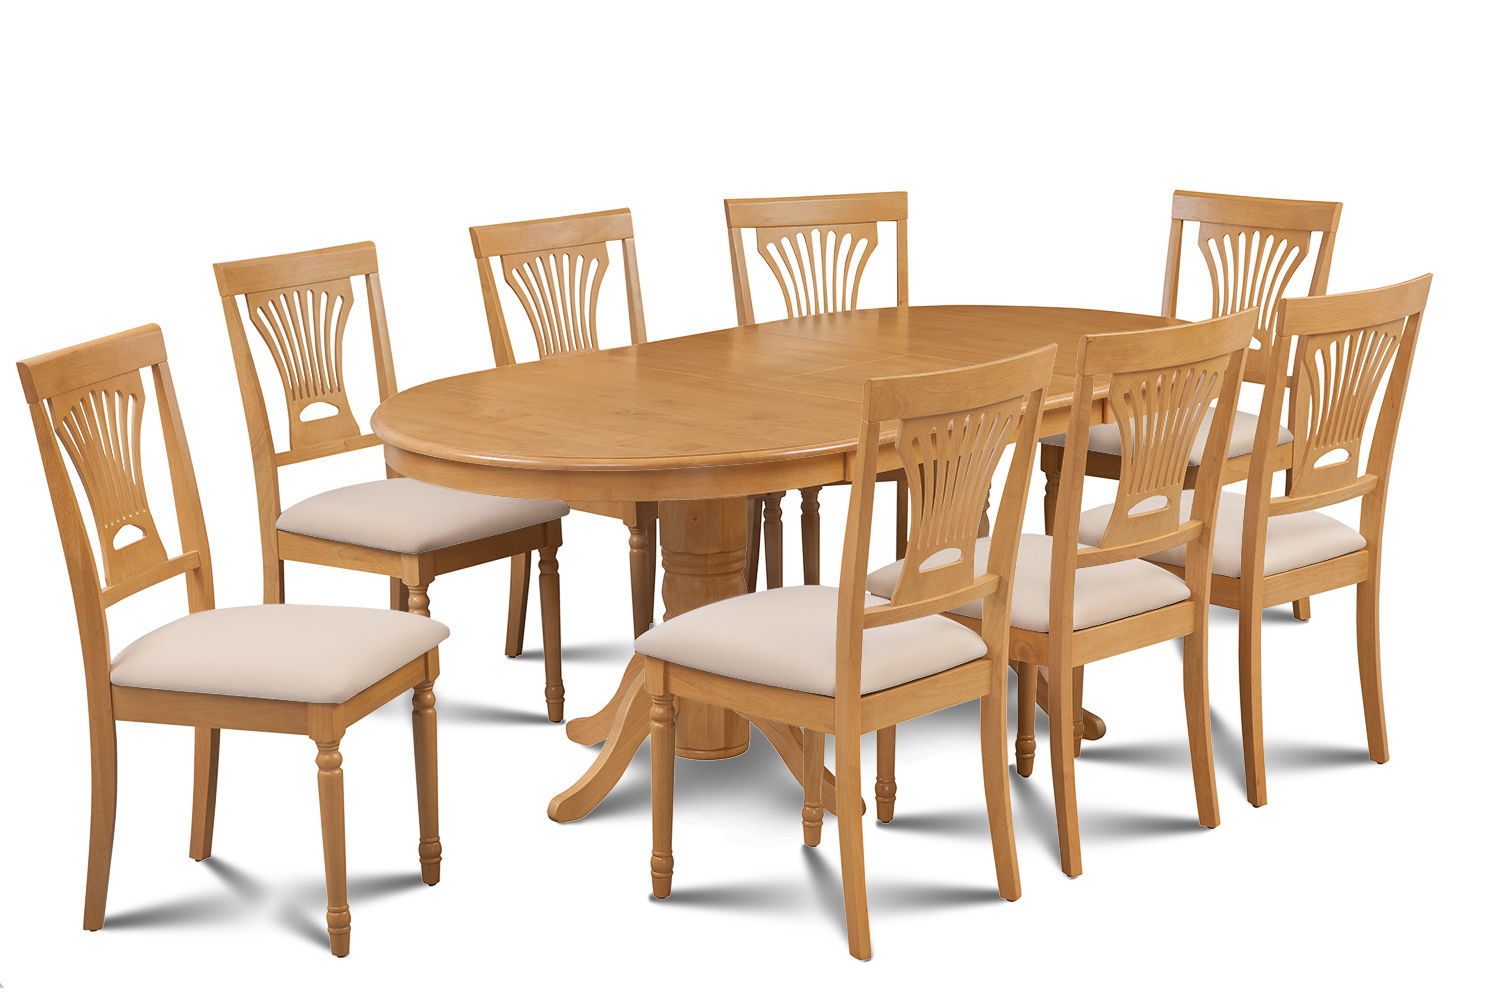 dining set with 8 chairs riser recliner for the elderly reviews 9 piece oval room table w soft padded